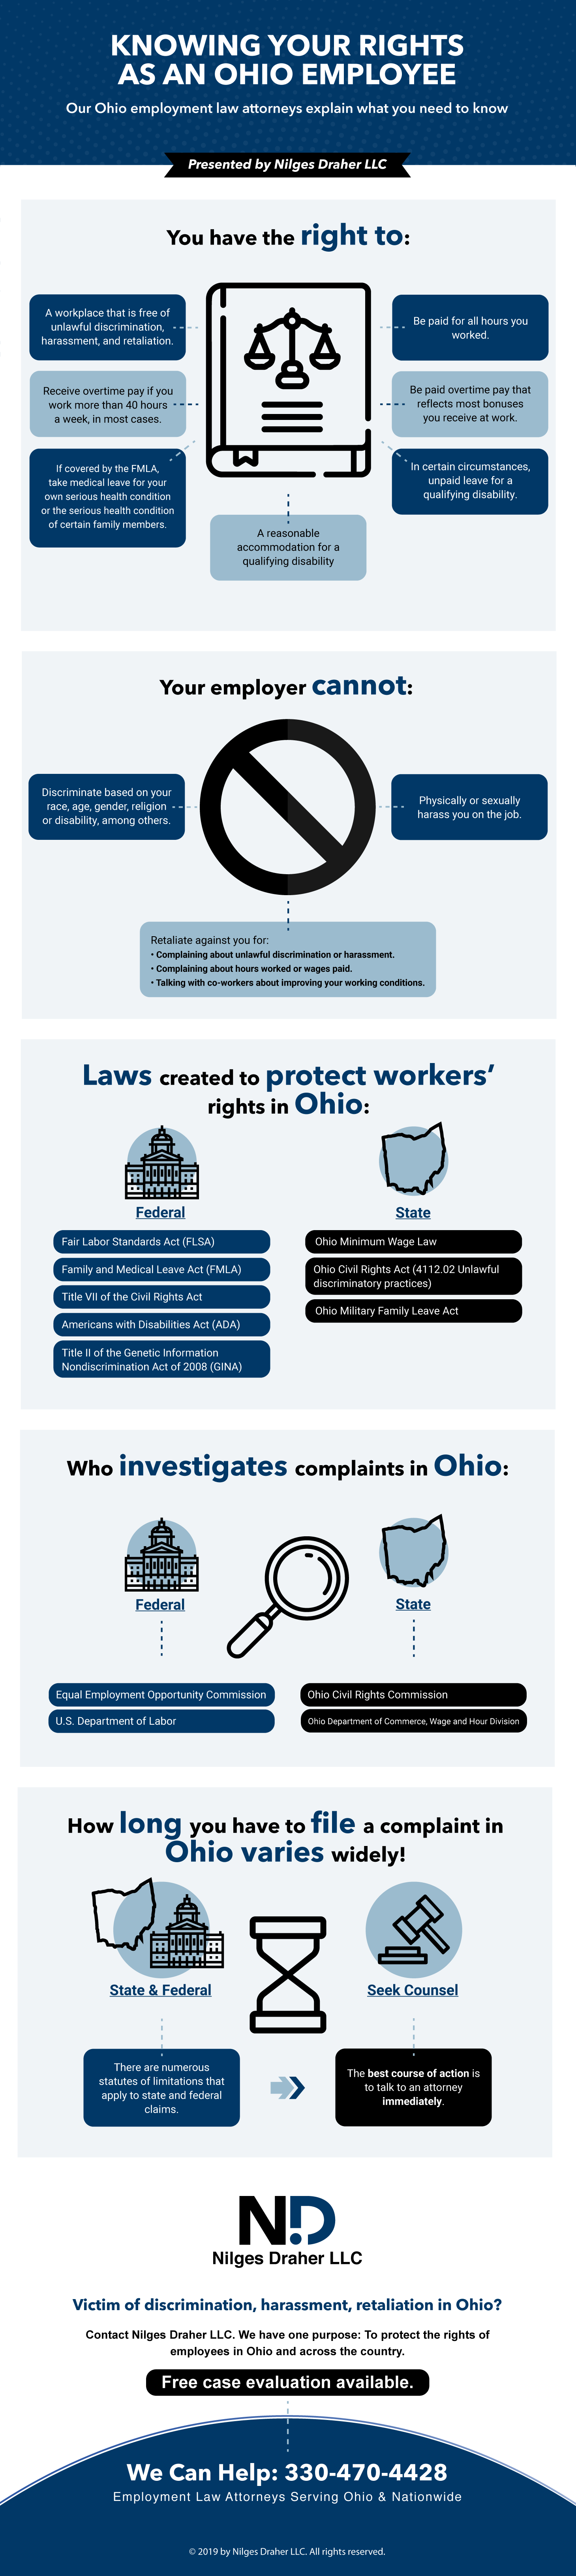 Knowing Your Rights as an Ohio Employee